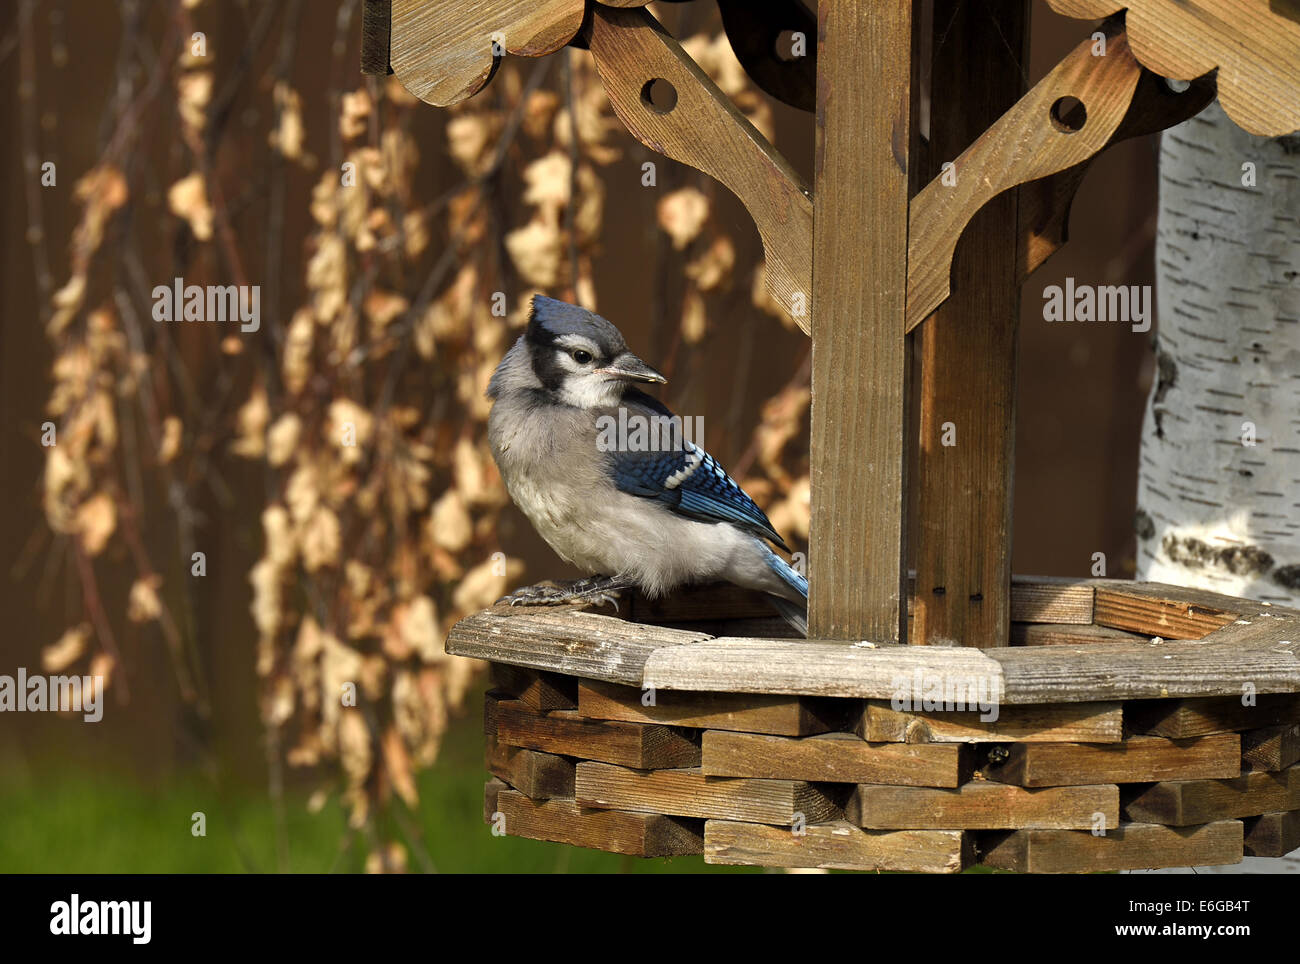 An adult Blue Jay perched on the edge of a bird feeder Stock Photo